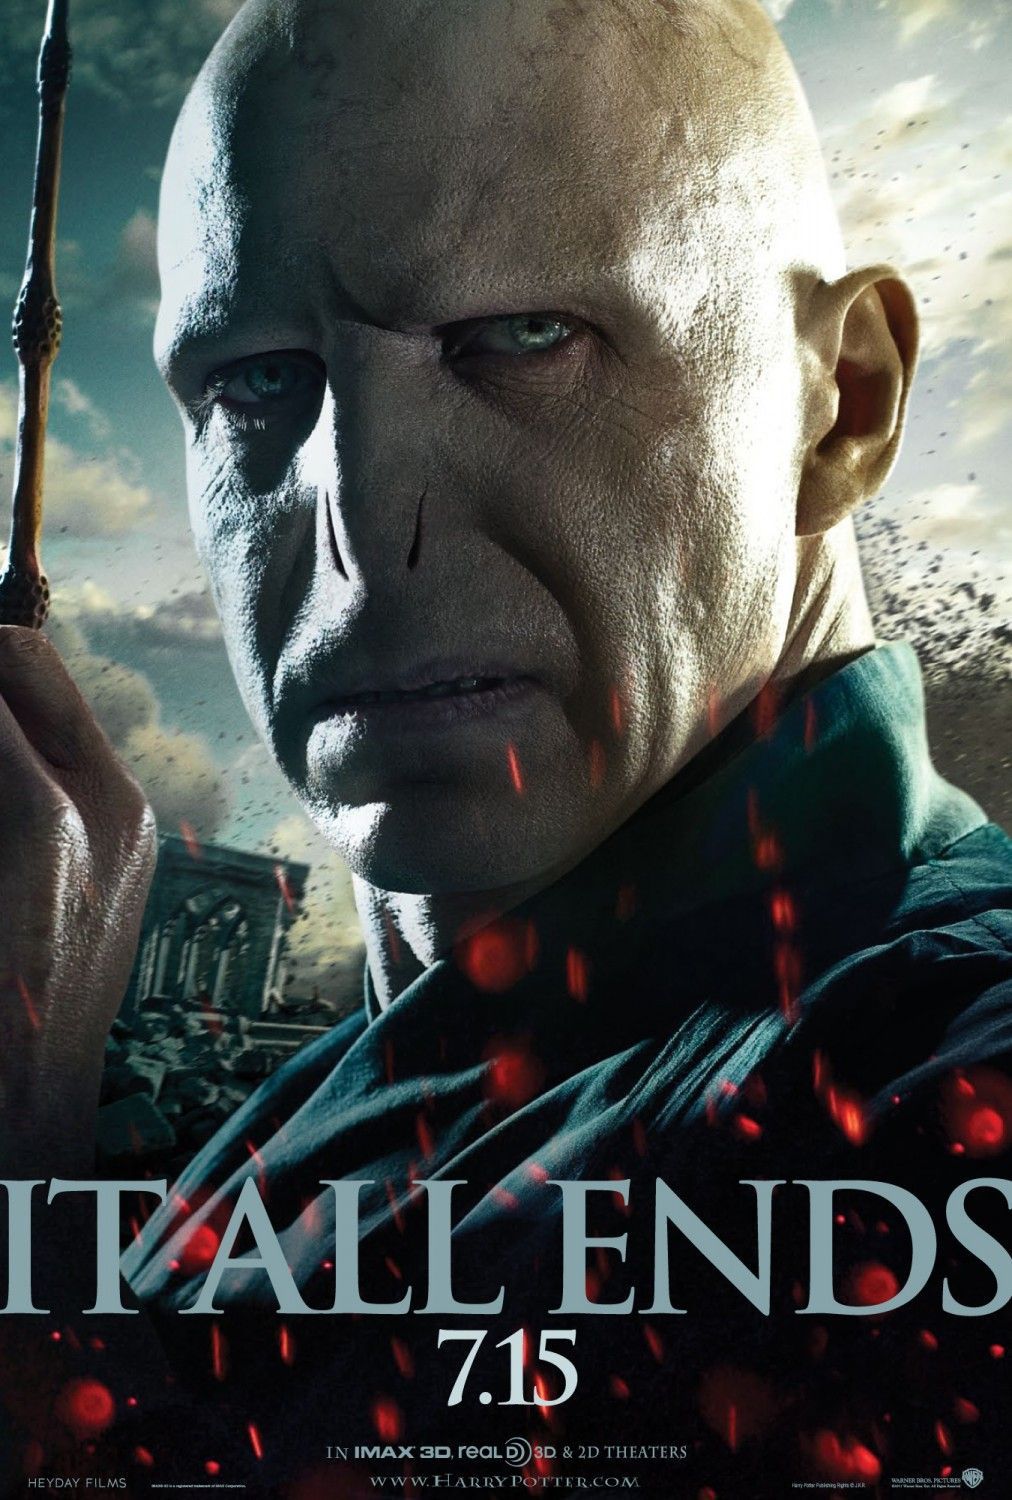 Harry Potter And The Deathly Hallows Part 2 It All Ends Here Voldemort Poster Design By Works Adv Harry Potter Poster Voldemort Deathly Hallows Part 2